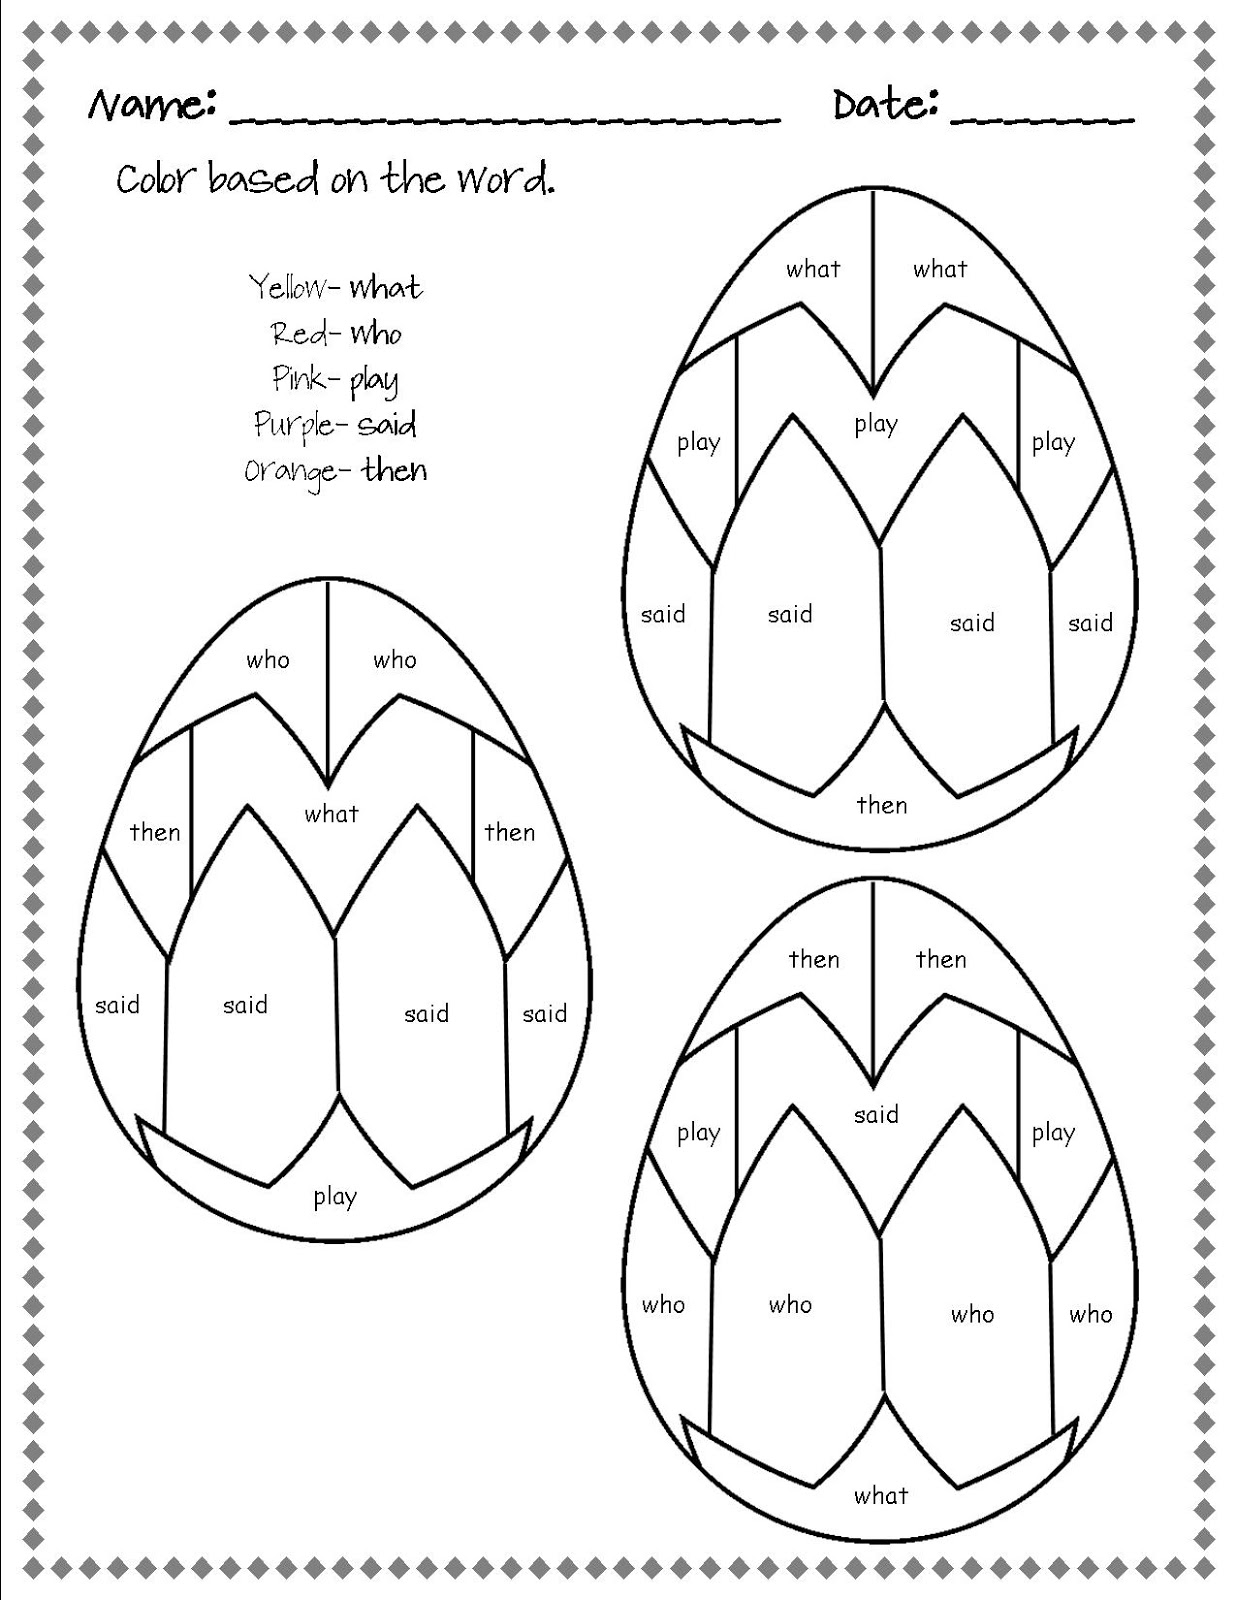 Coloring sheets sight words - Spring Fling Freebies Continued